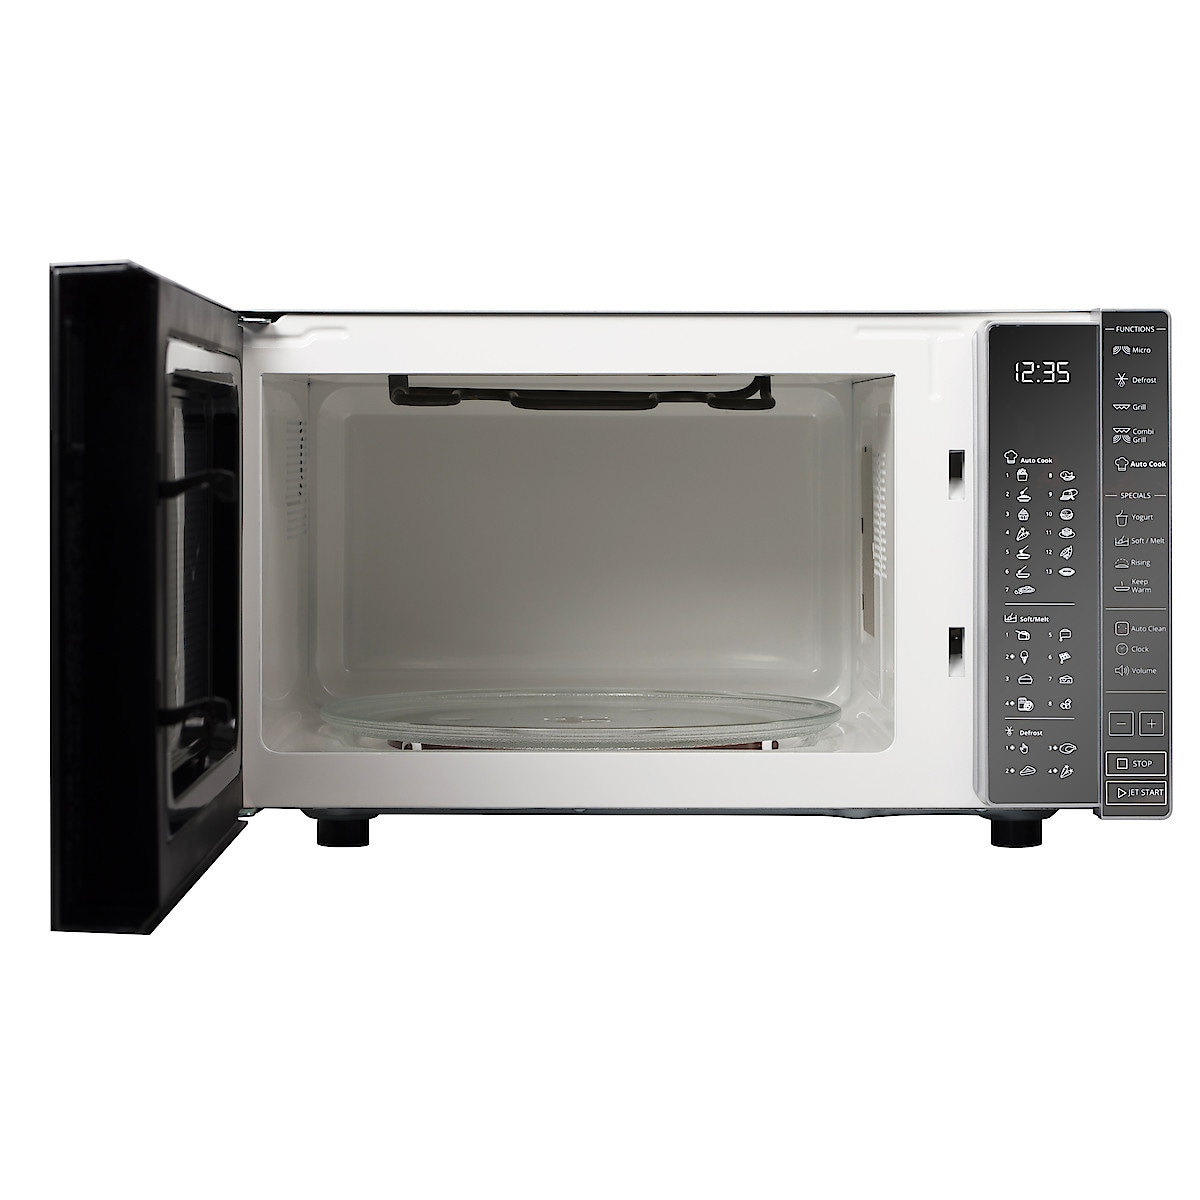 Mikrowelle mit Grill, Whirlpool MWP 303 M